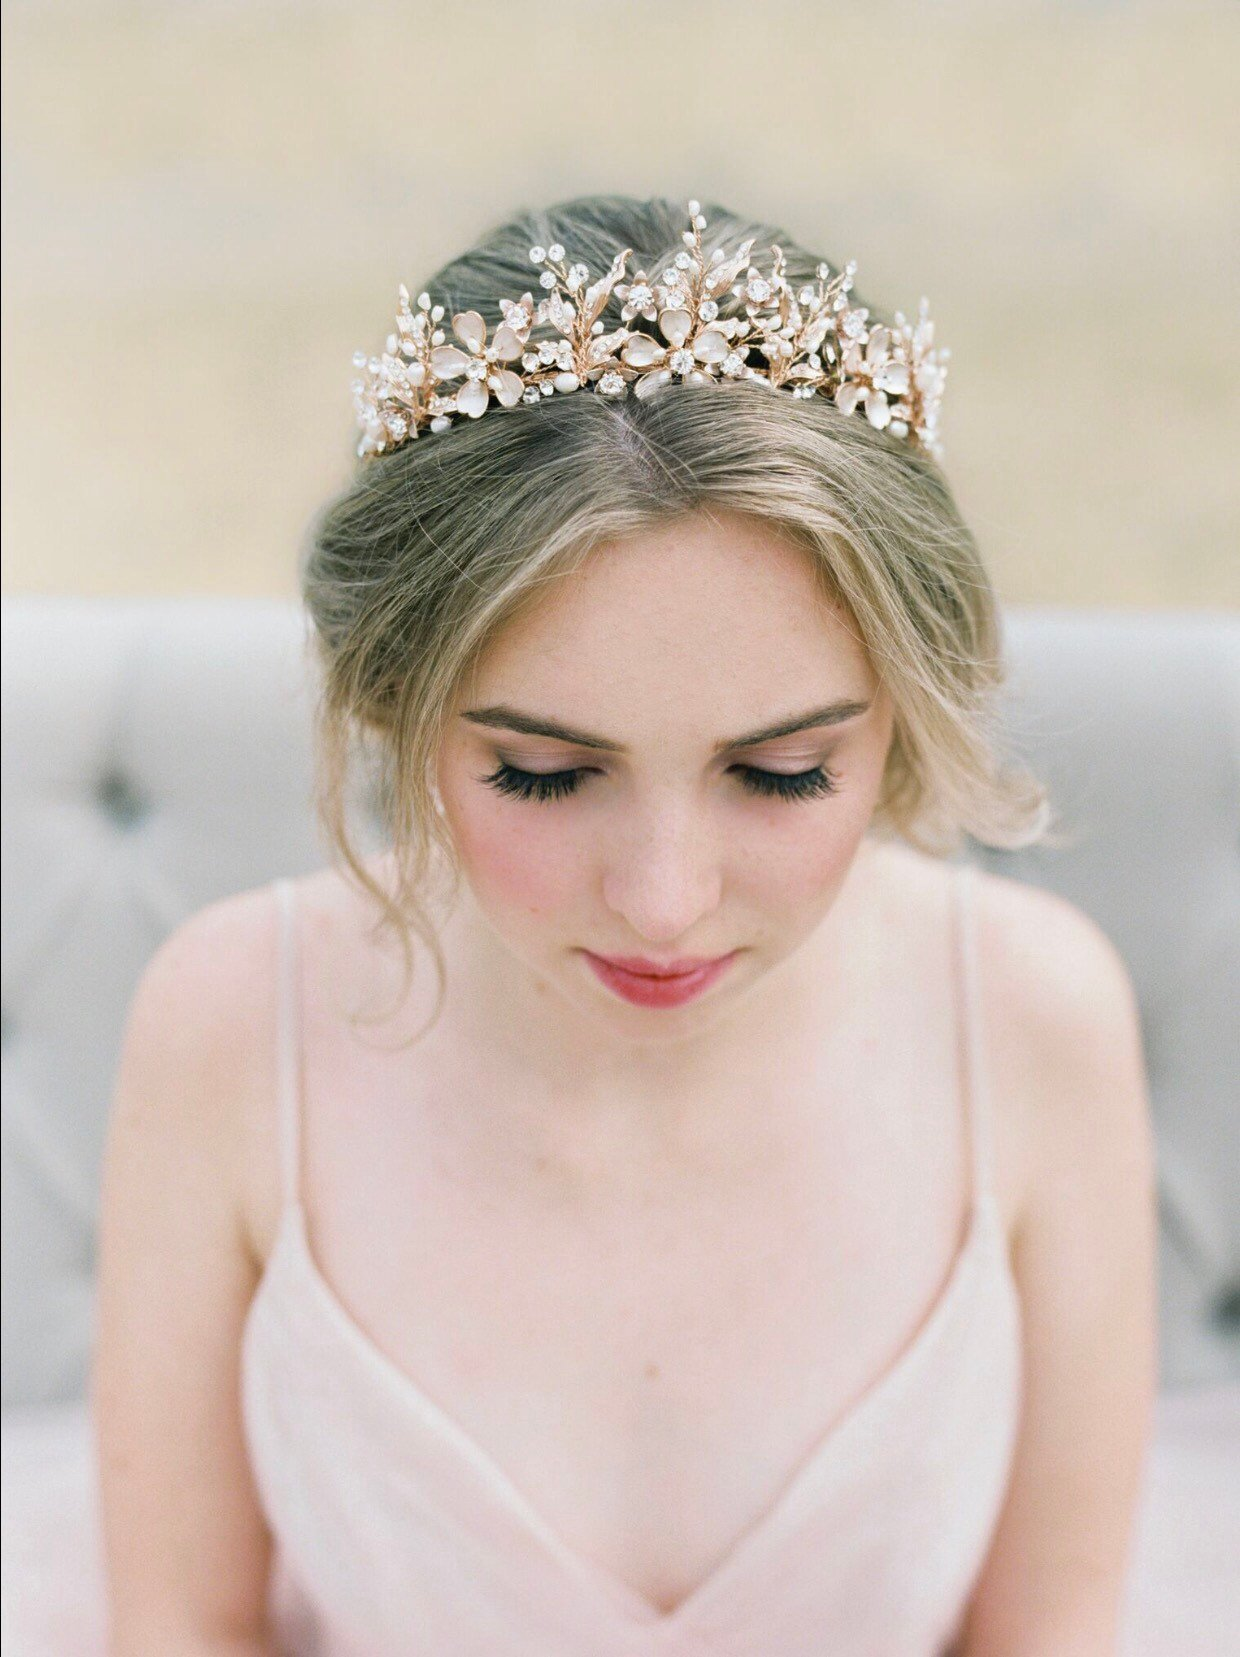 Bridal Tiara GENEVIEVE Tiara Rose Gold Crystal Wedding Crown Rhinestone Tiara Wedding Tiara Headpiece Crown Swarovski Crystal Tiara.jpg